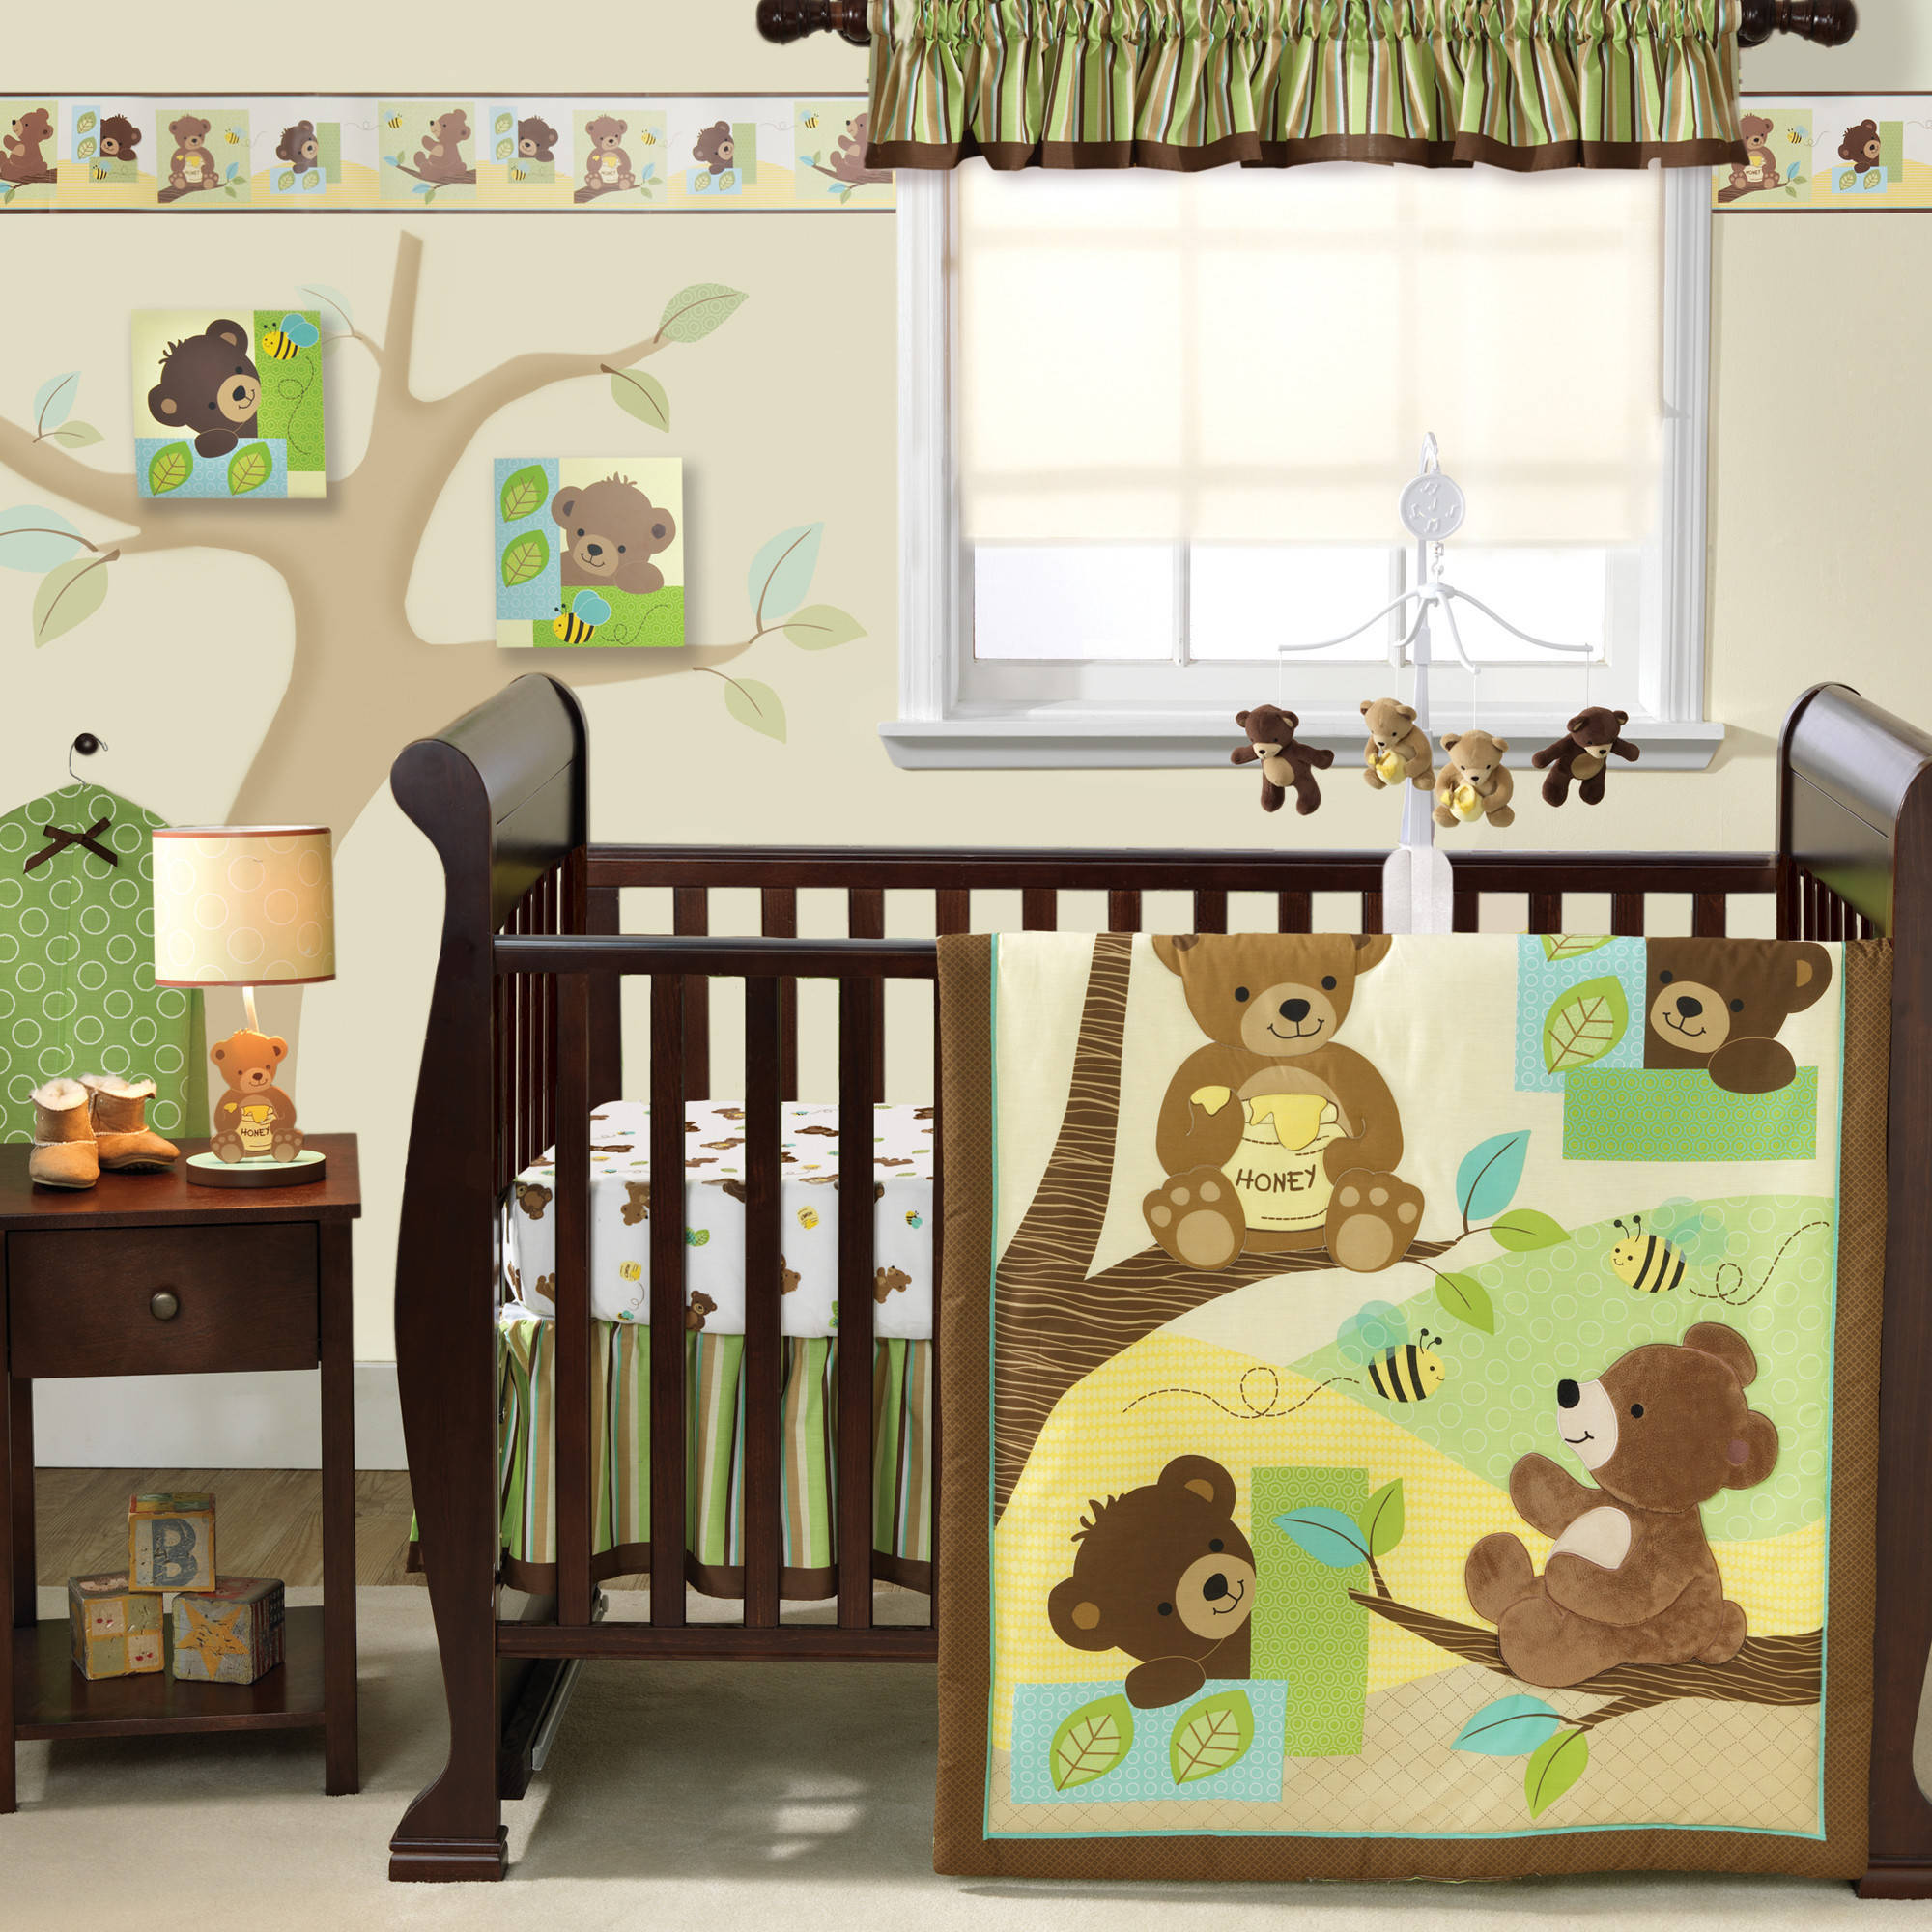 Bedtime Originals by Lambs & Ivy - Honey Bear 3pc Crib Bedding Set